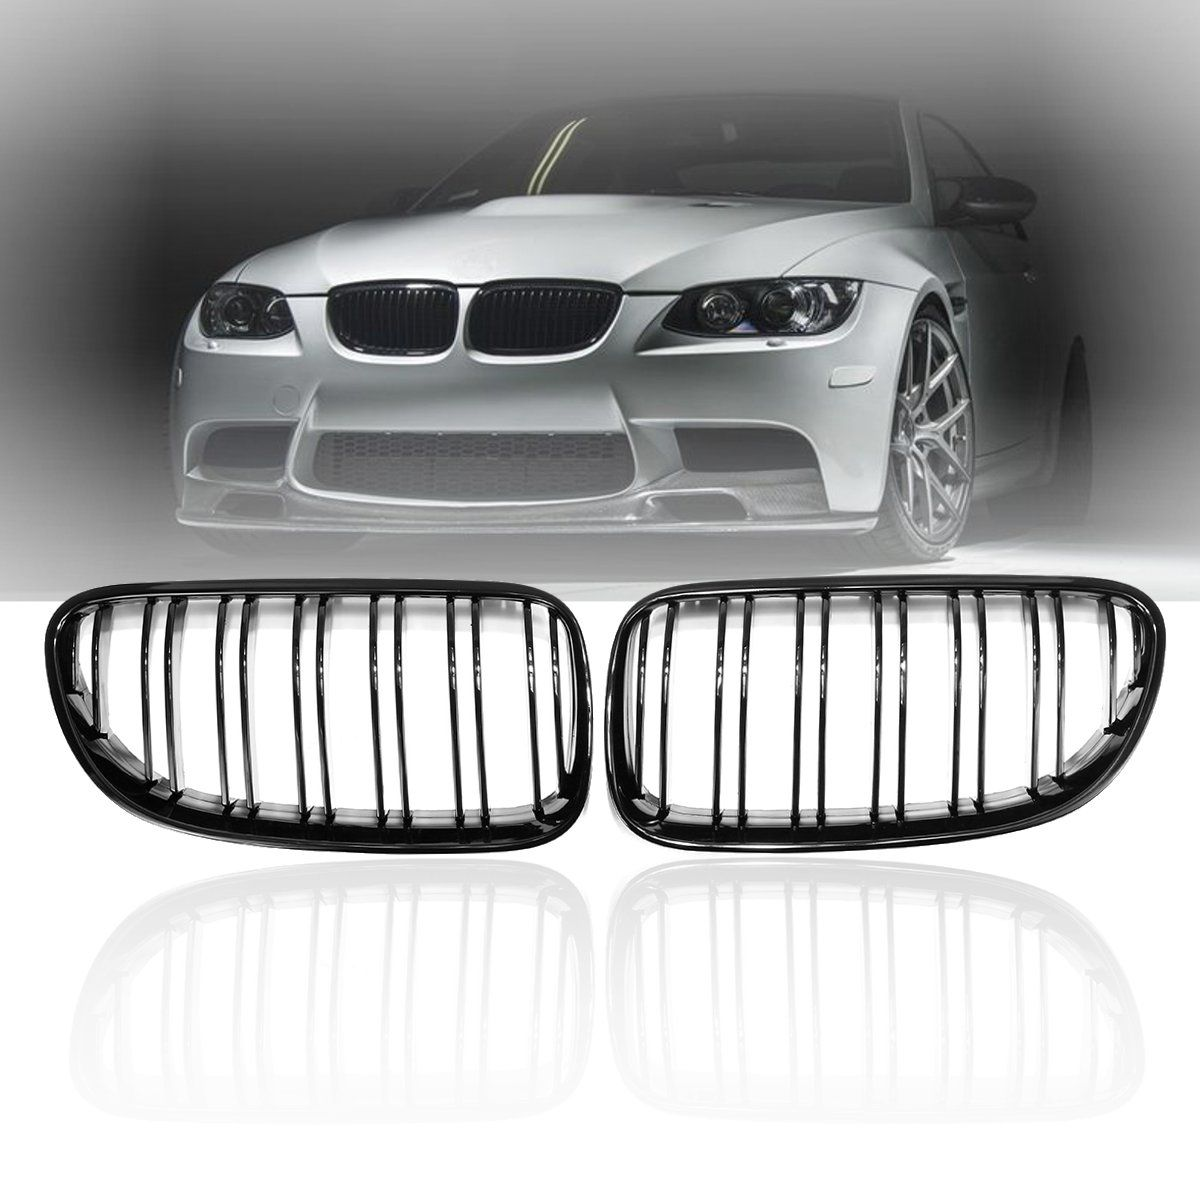 Pair Gloss Matt Black M Color Front Kidney Grill Grille Dual Line Slat For BMW E92 E93 328i 335i 2010 2011 2012 2013 2014